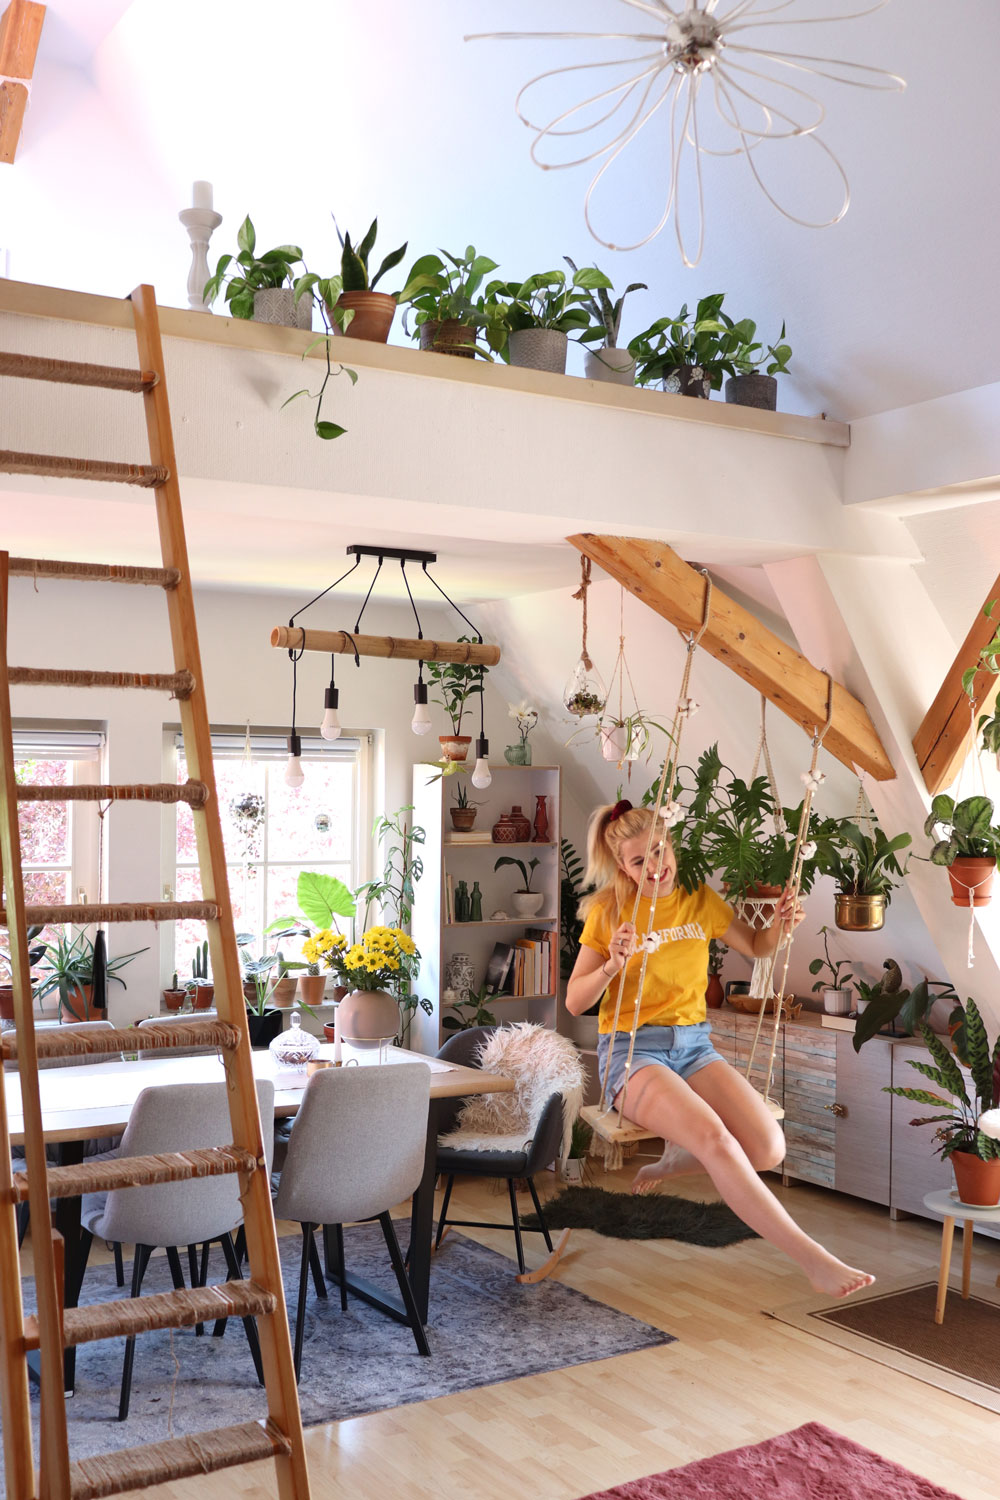 DIY-indoor-swing-in-a-jungle-loft-appartment-fagususban-submission